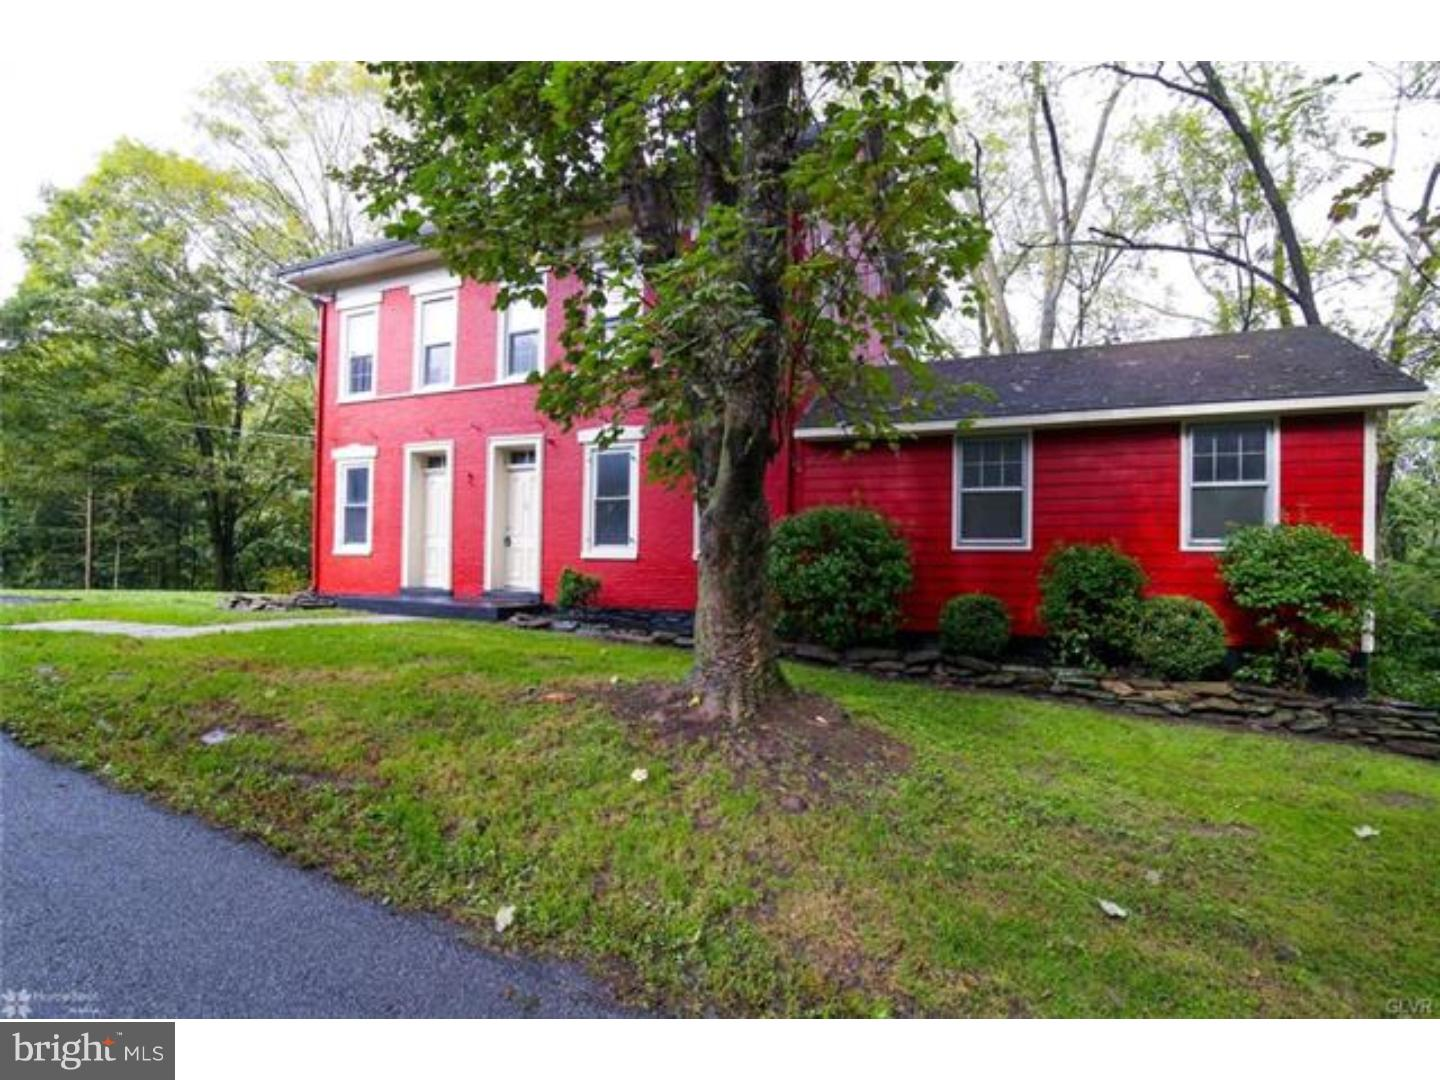 6642 BITTNERS CORNER ROAD, LOWHILL TOWNSHIP, PA 18066